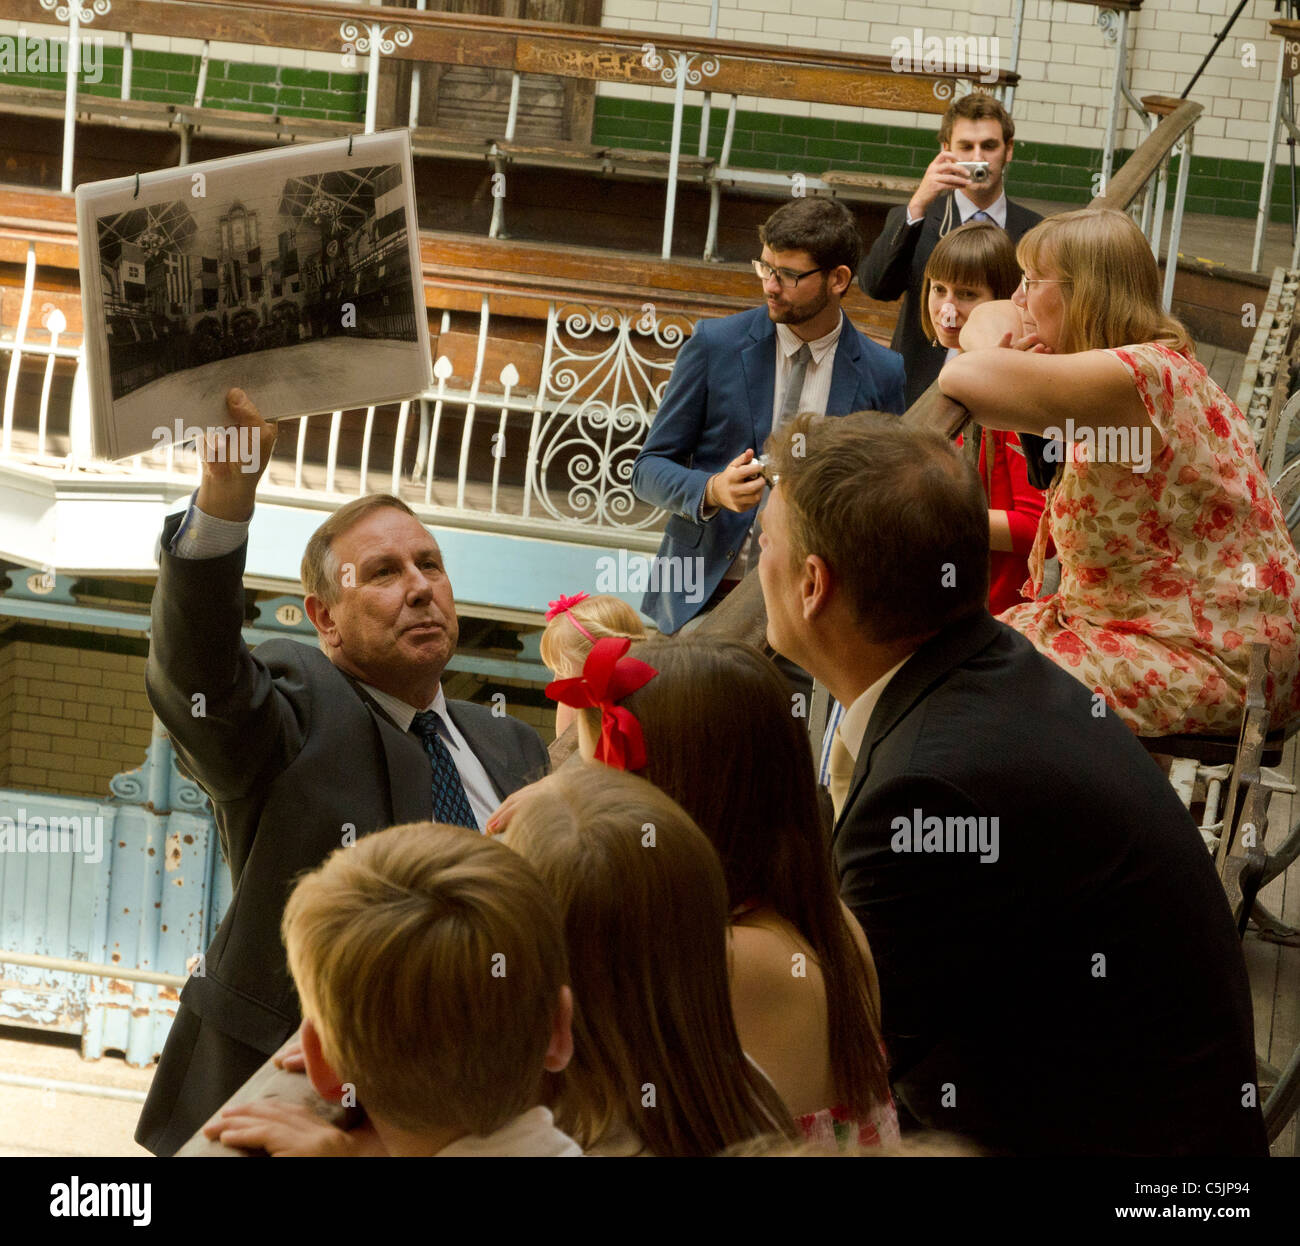 Guide tour illustrating the old Victoria baths pictures to visitors, Victoria Baths, Manchester, England, Great - Stock Image